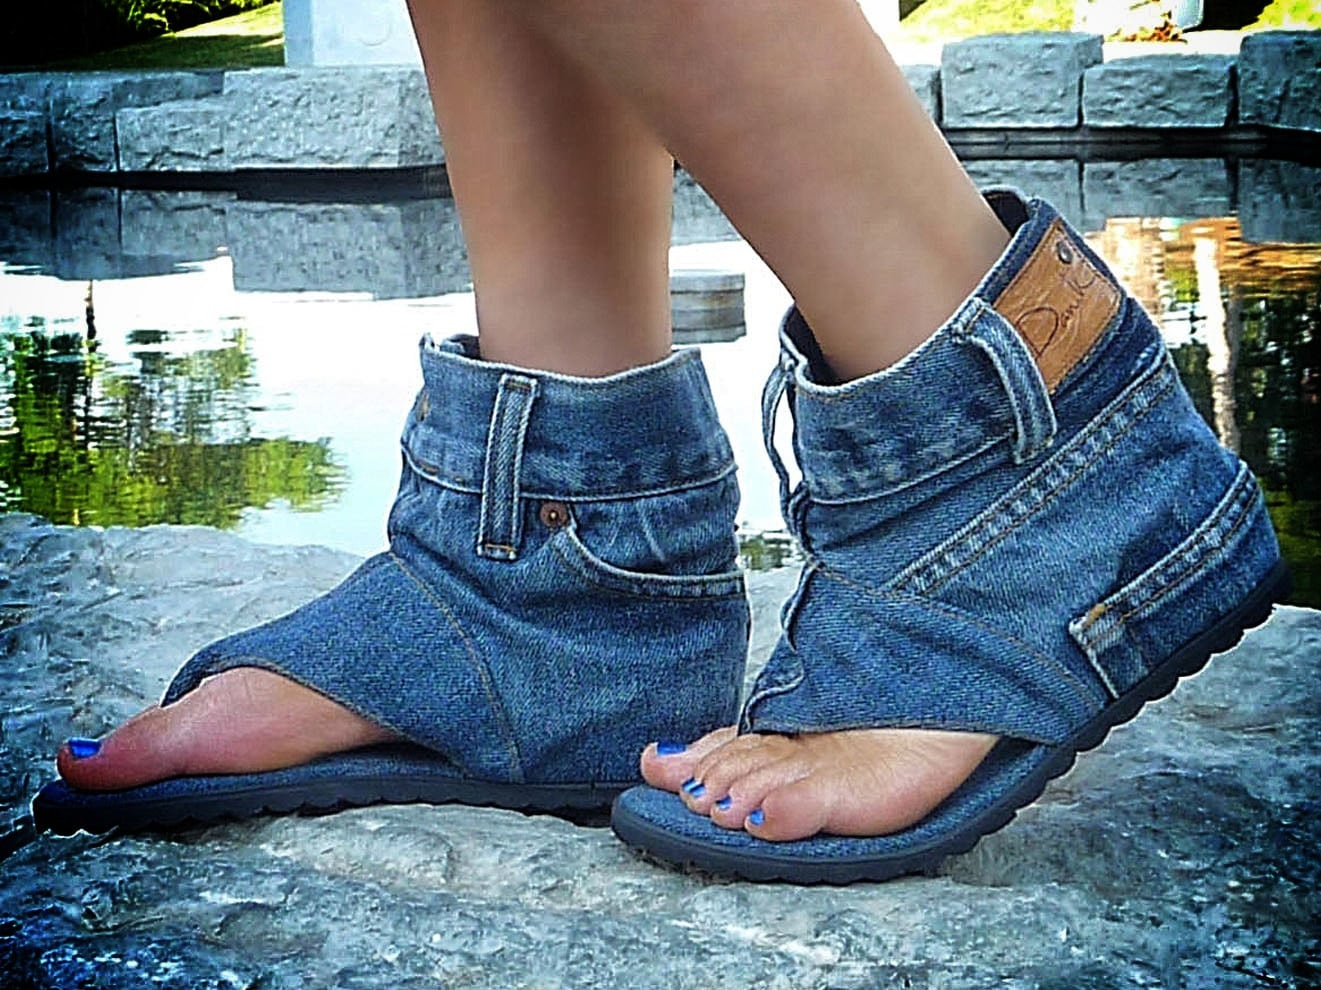 Denim Shoes: Ferociously Funky Sandals Made From Vintage Jeans